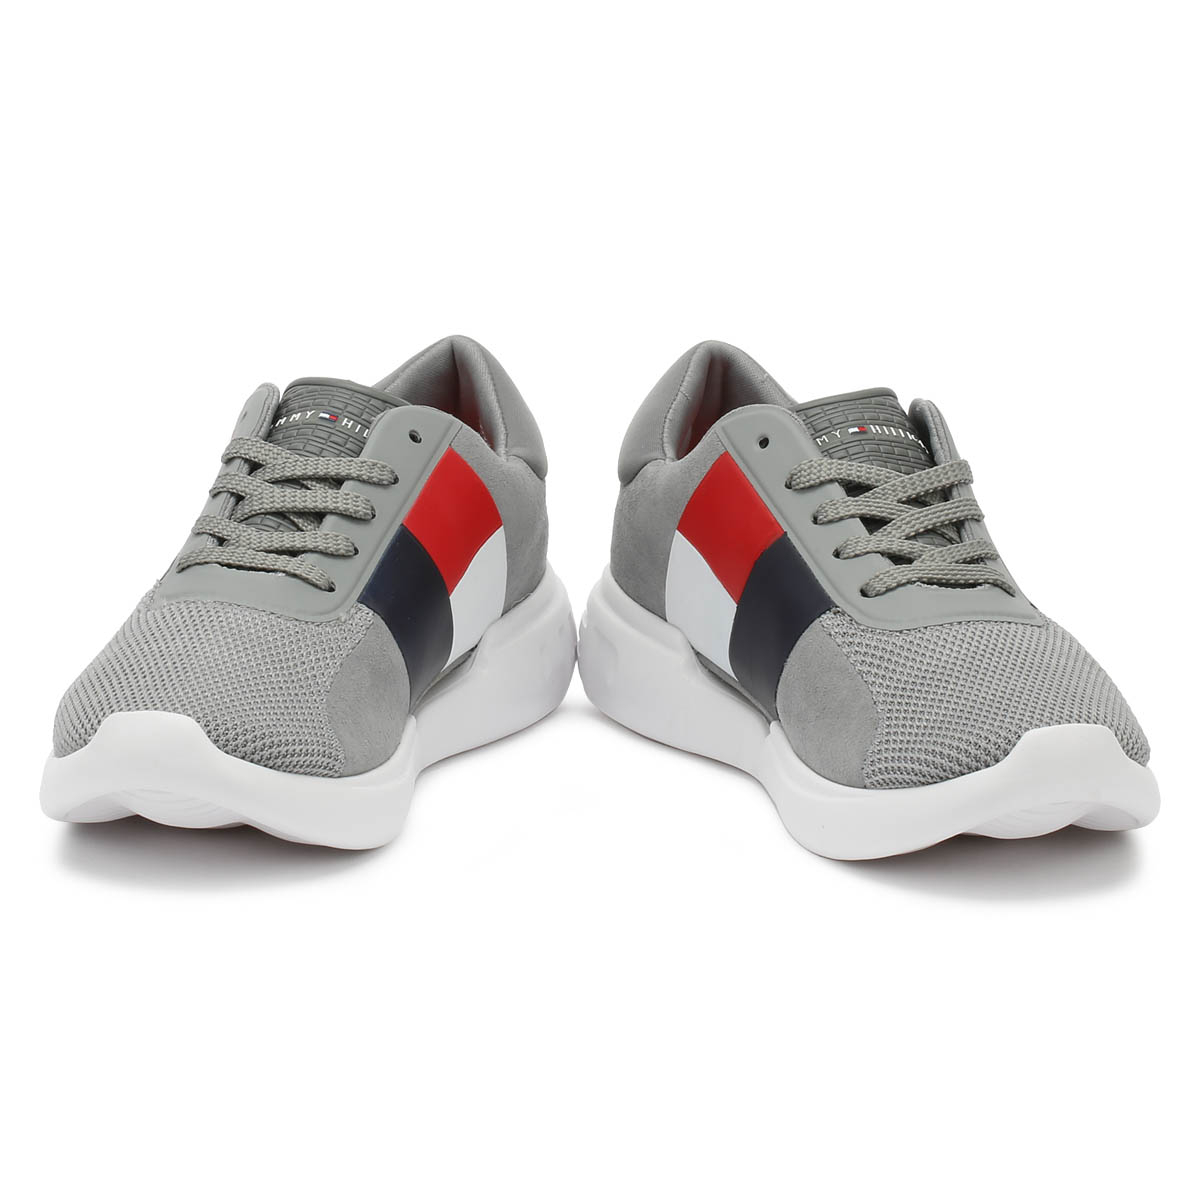 38b7b186a Tommy Hilfiger Mens Trainers Grey Lighweight Sport Casual Running Shoes